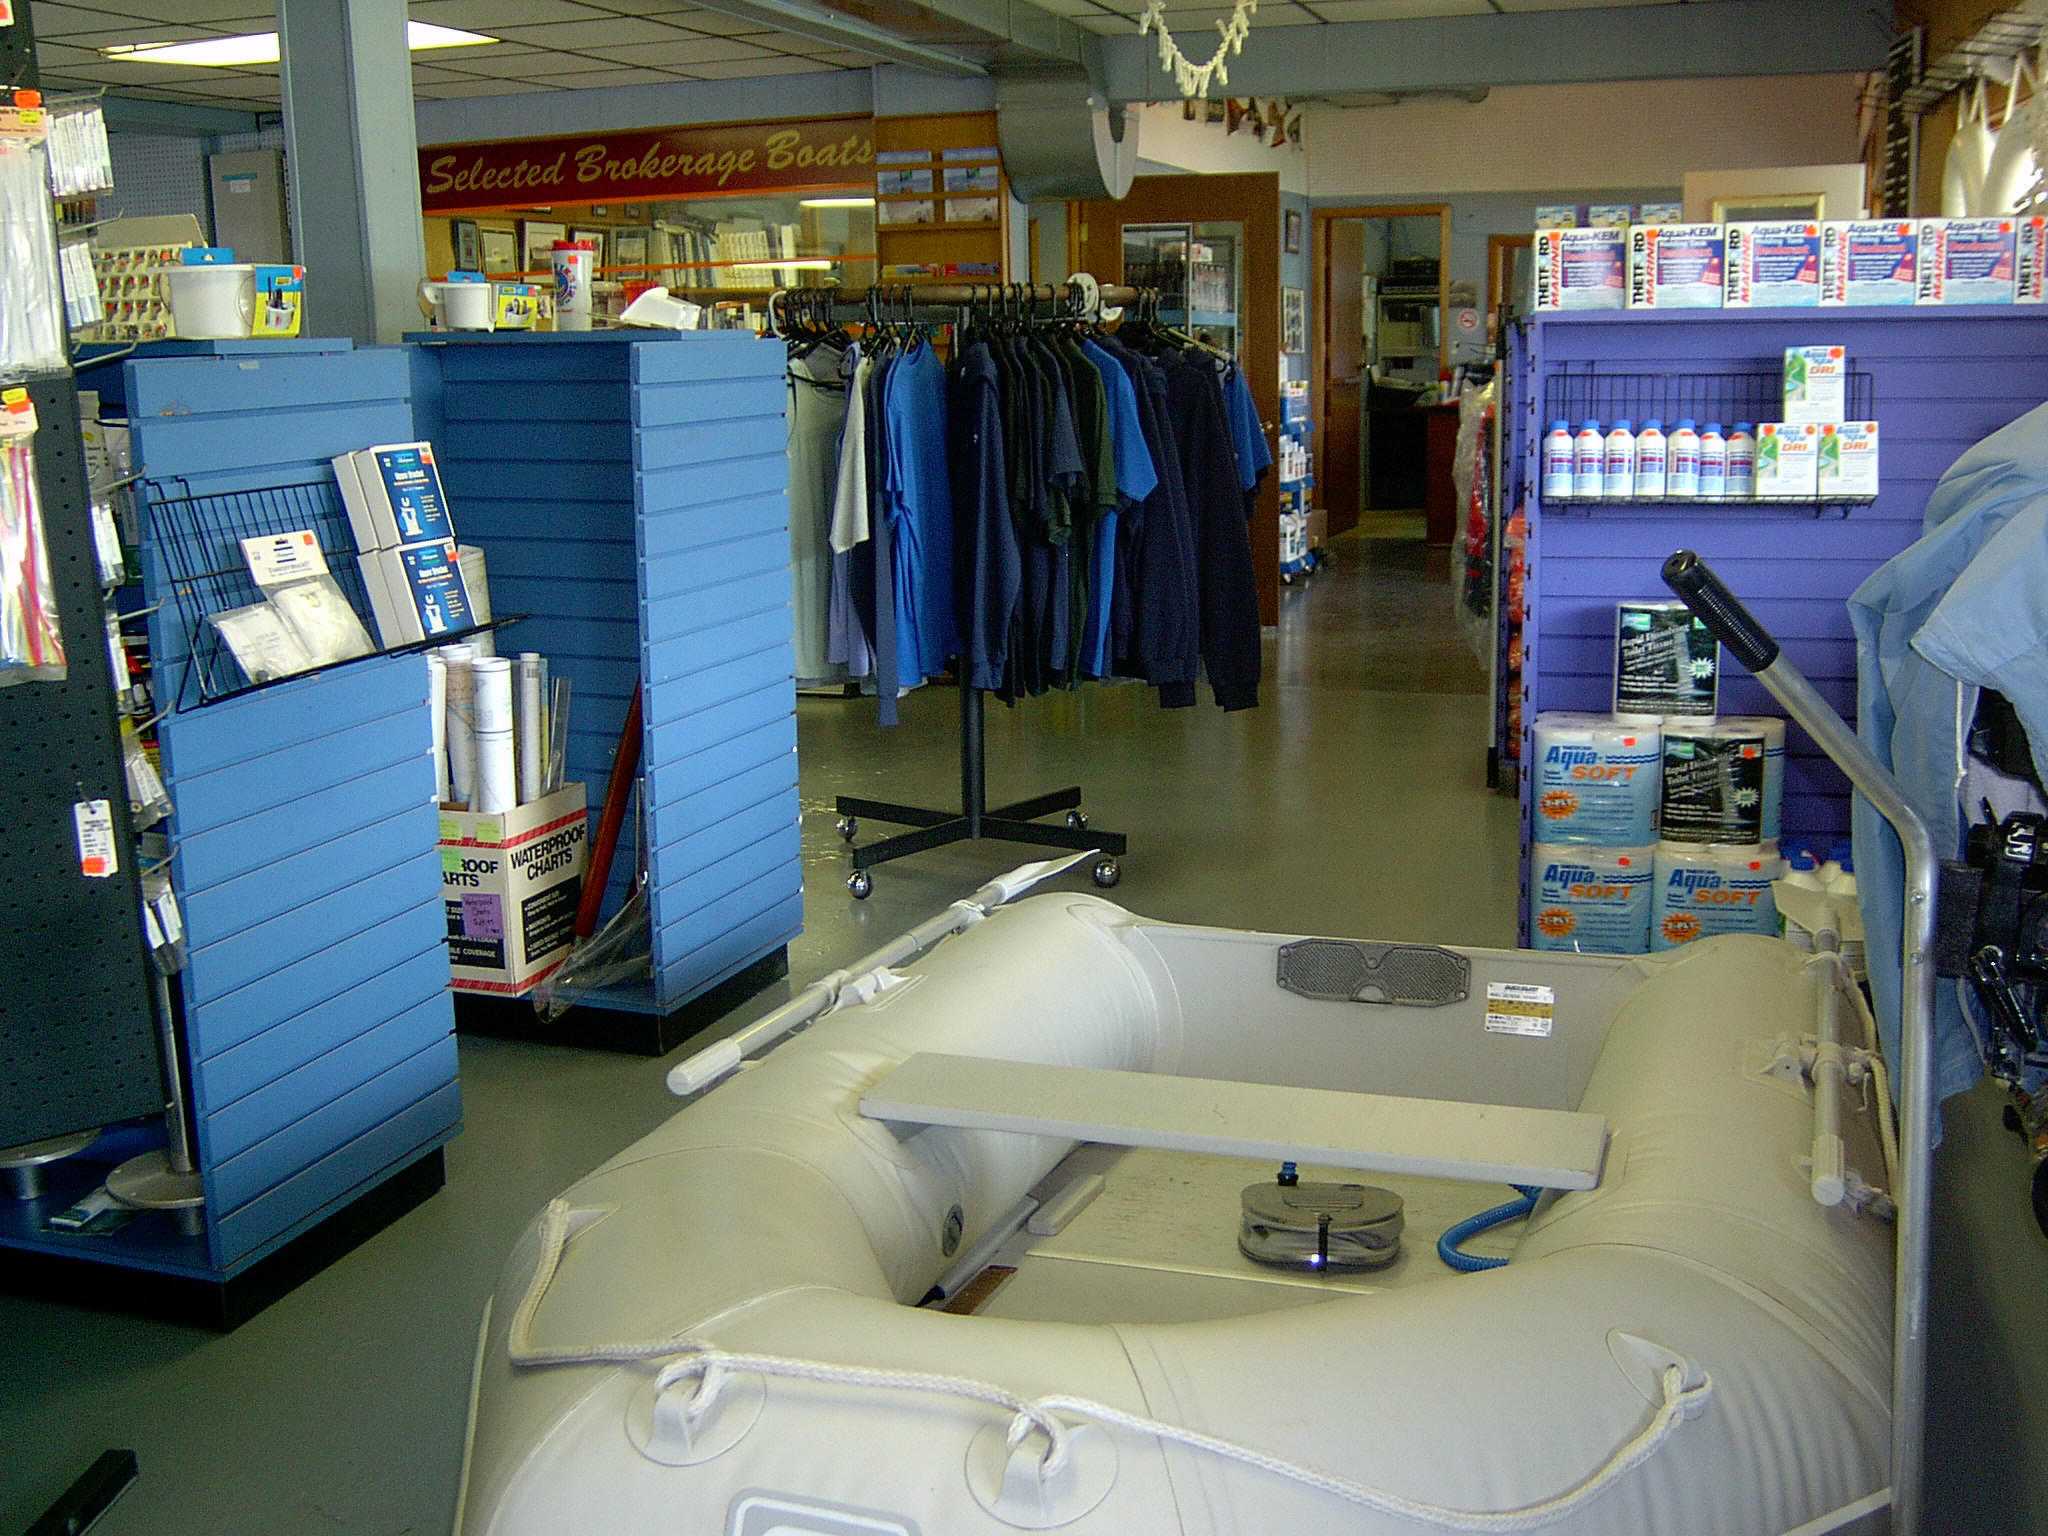 Find your boating needs here!